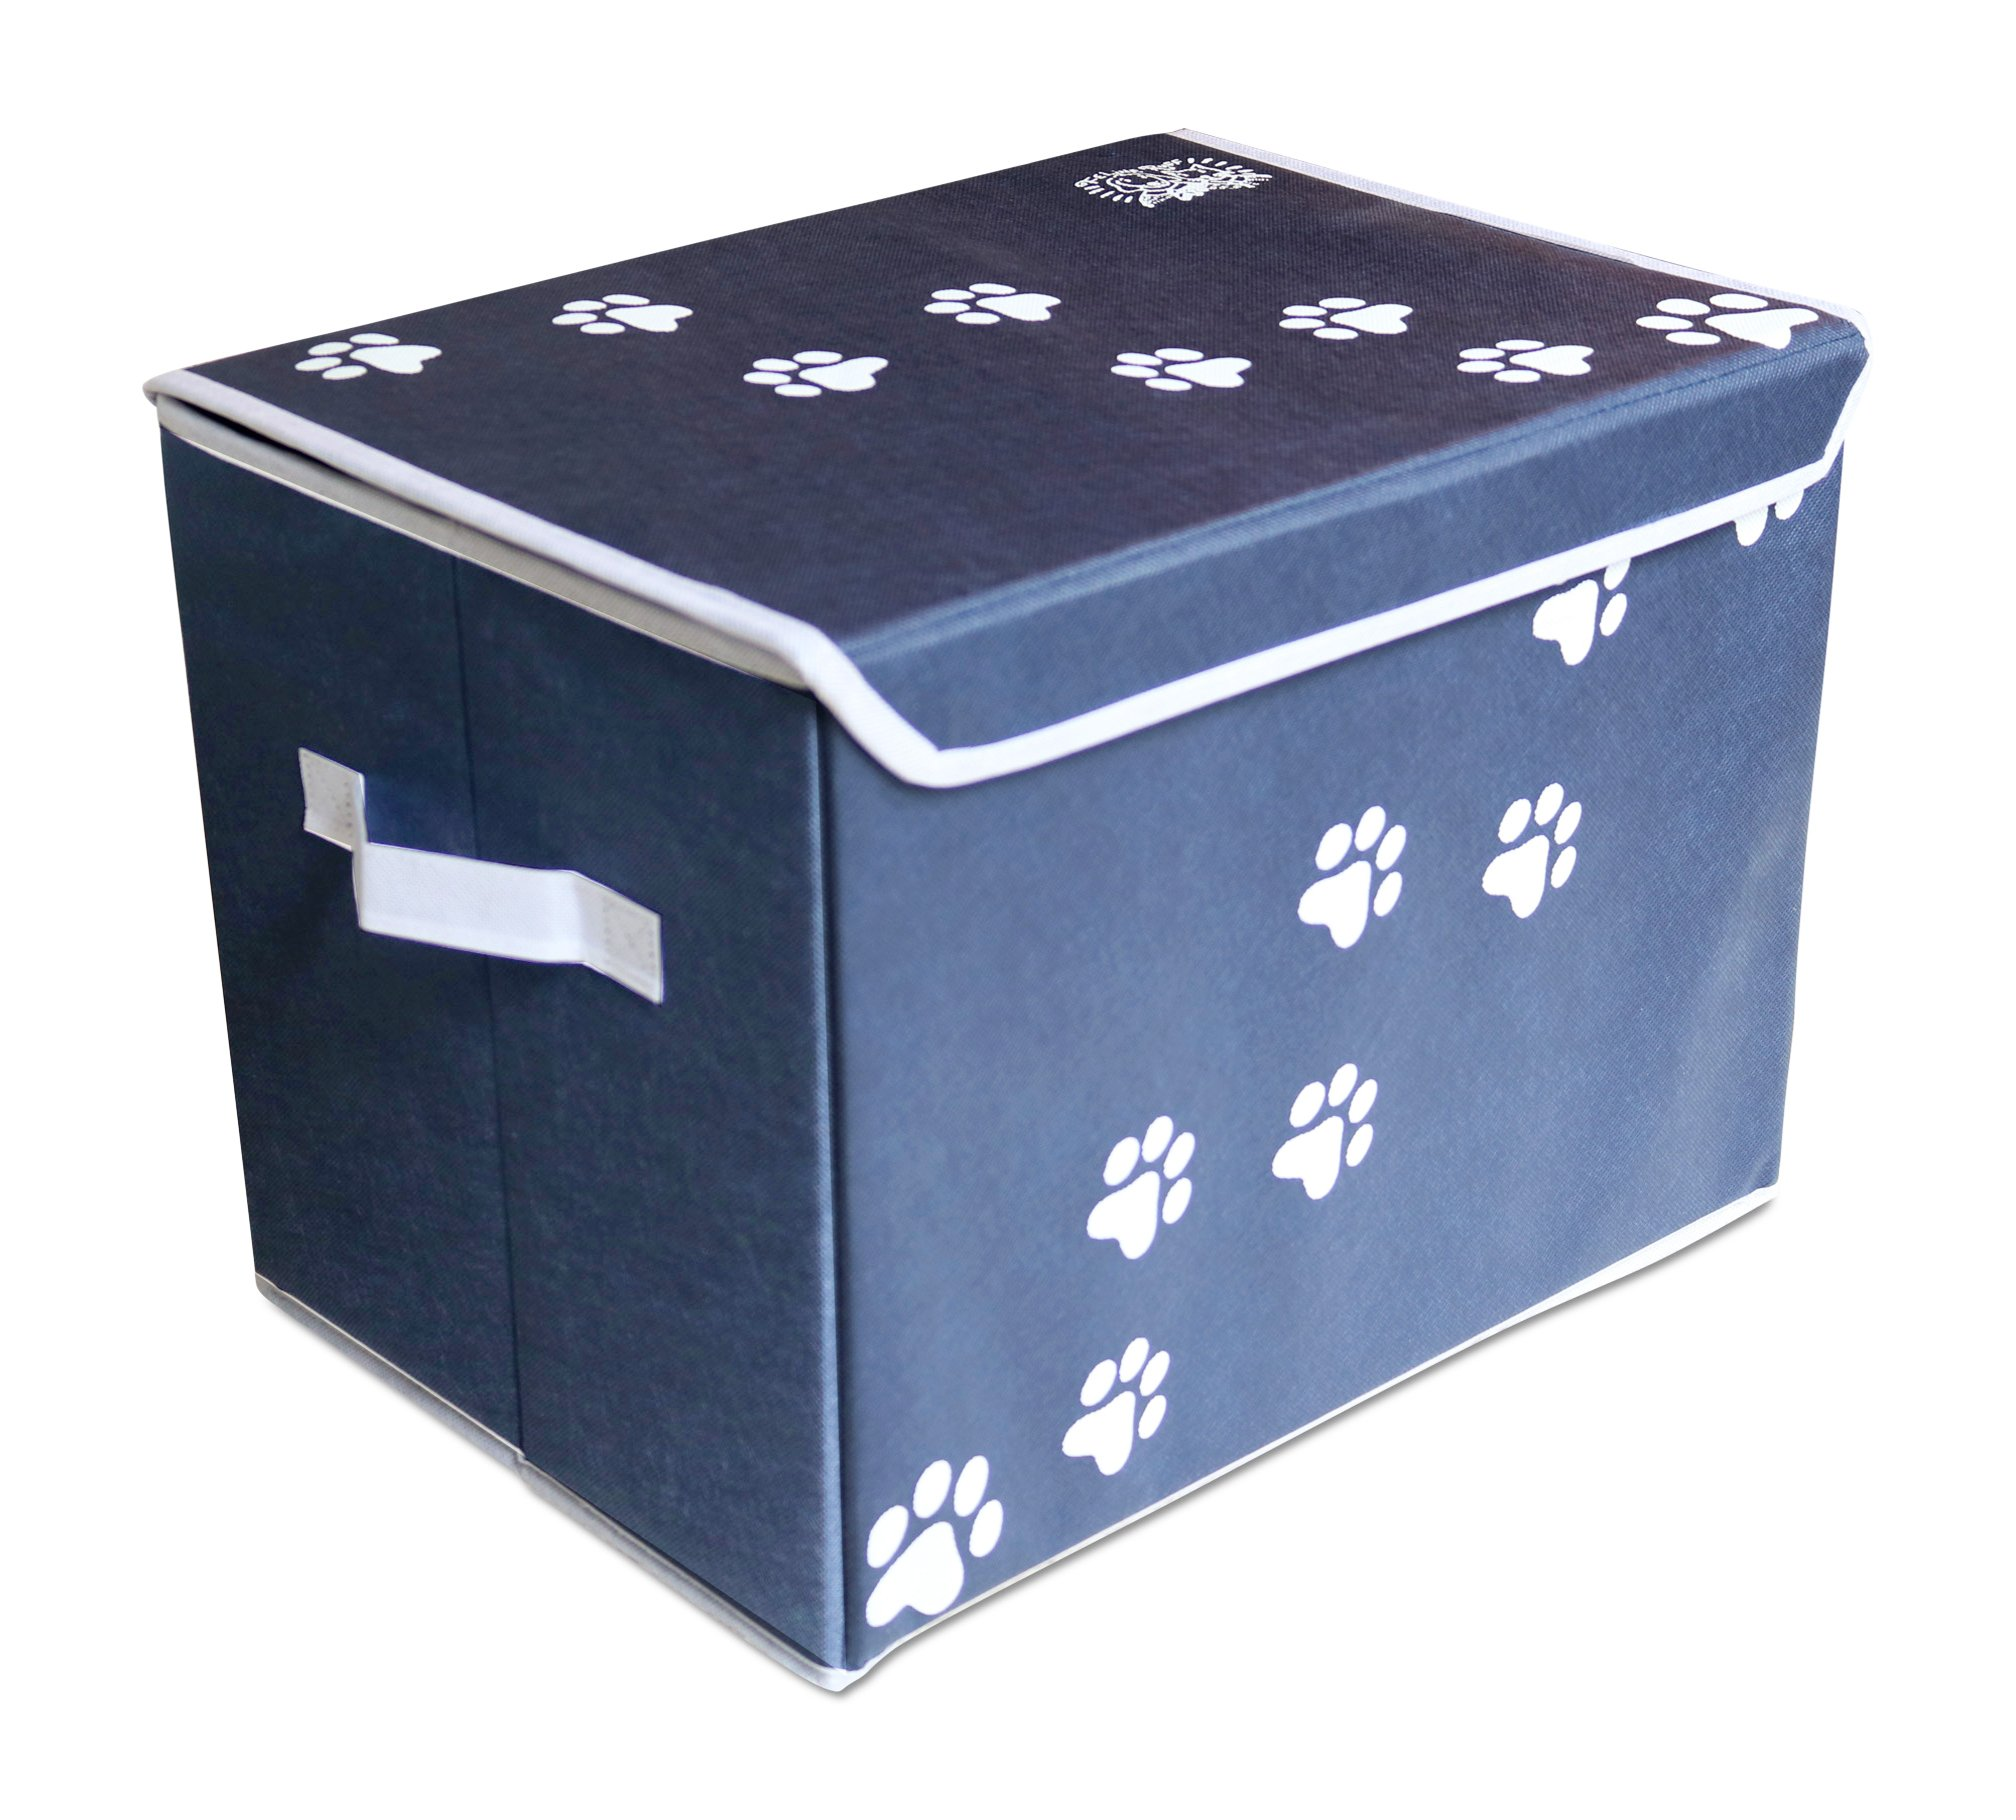 Feline Ruff Large Dog Toys Storage Box. 16″ x 12″ inch Pet Toy Storage Basket with Lid. Perfect Collapsible Canvas Bin for Cat Toys and Accessories Too!